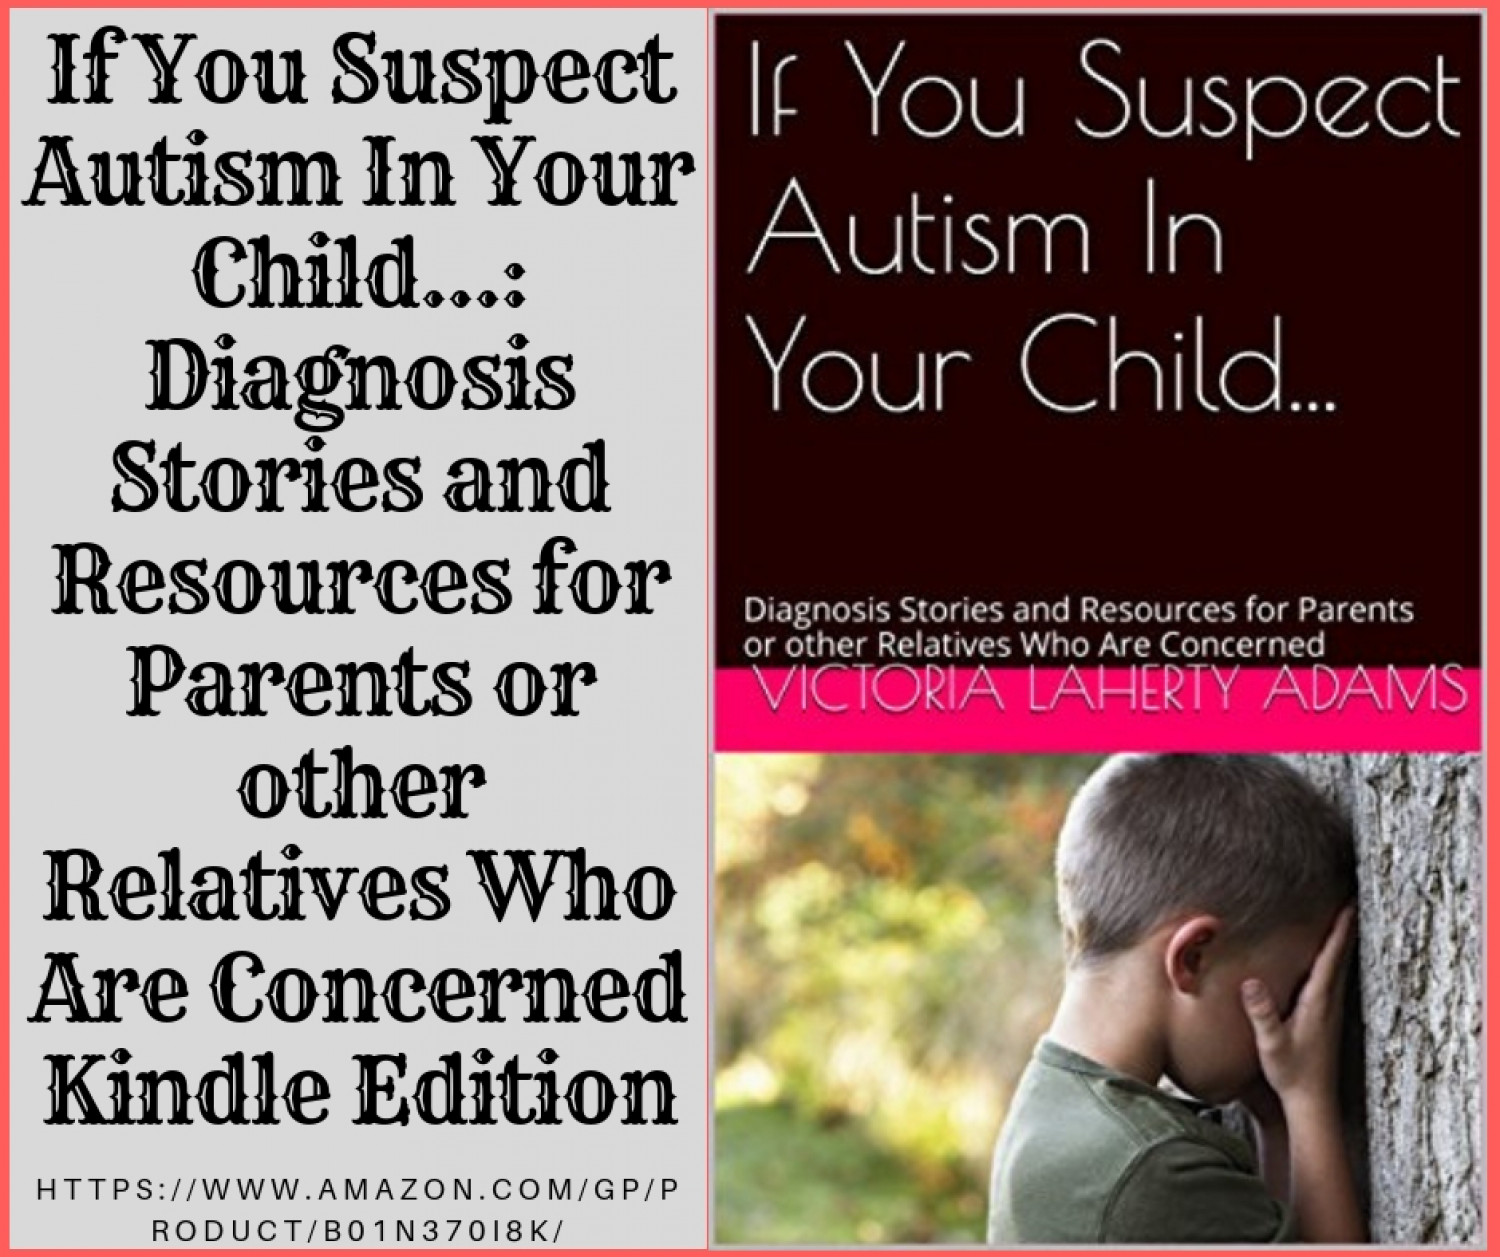 If You Suspect Autism In Your Child. Diagnosis Stories and Resources for Parents or other   Relatives Who Are Concerned  Infographic